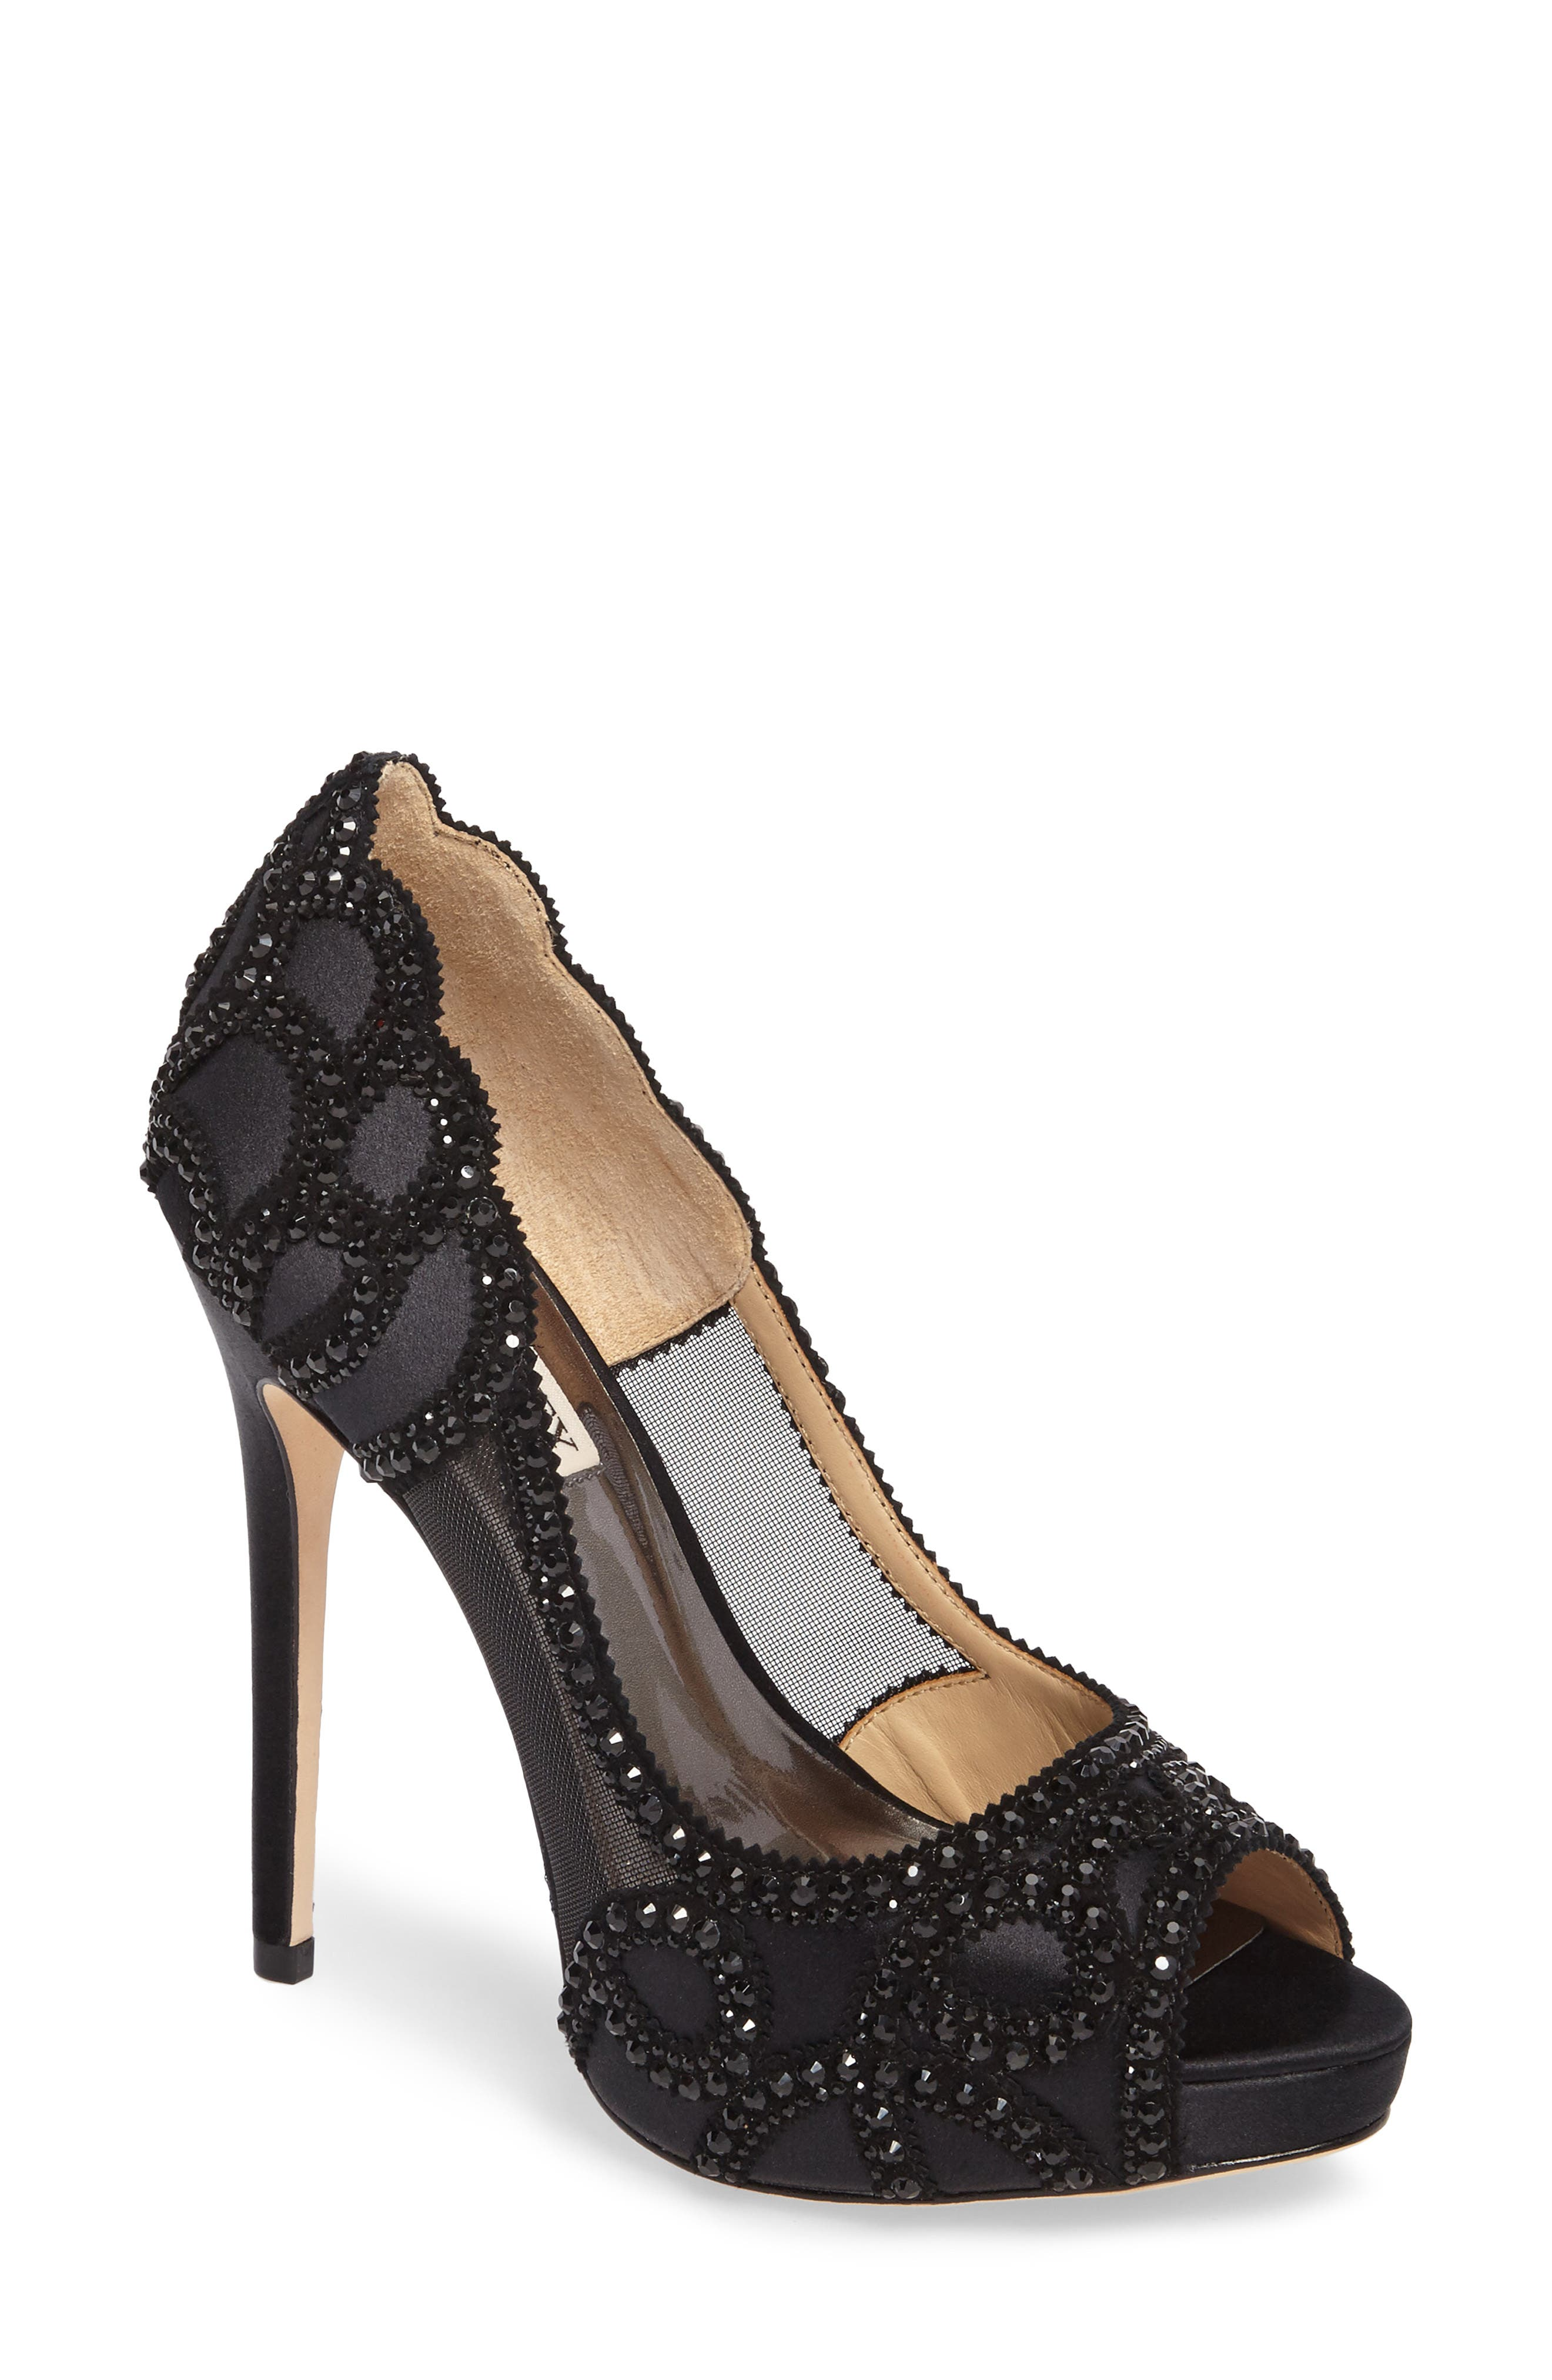 Witney Embellished Peep Toe Pump,                             Main thumbnail 1, color,                             Black Satin